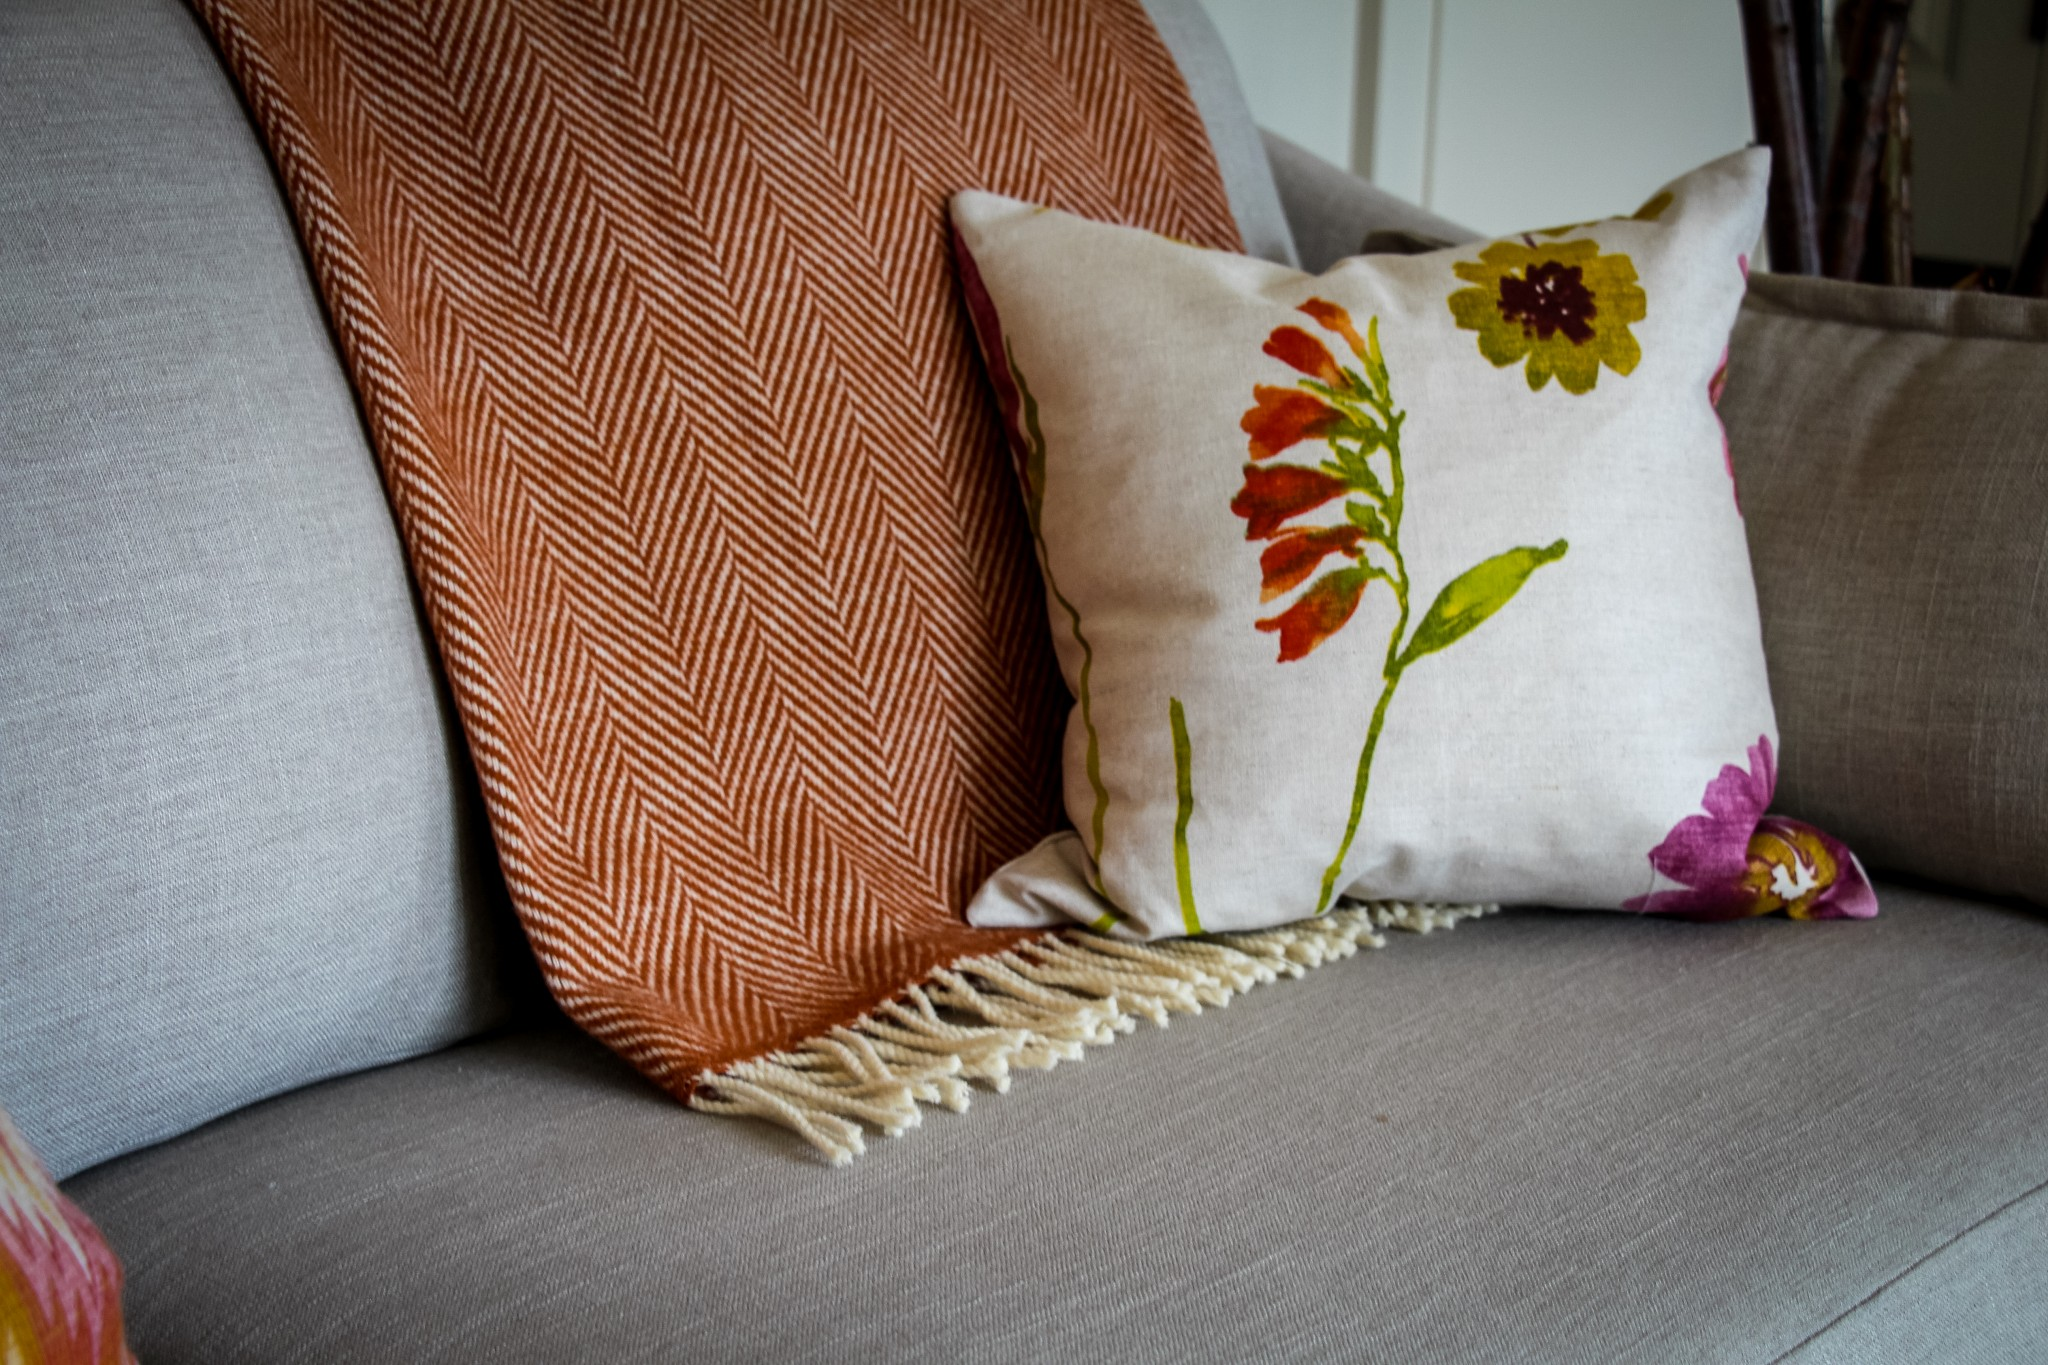 On a neutral gray sofa, a floral pillow offers a pop of seasonal colour.